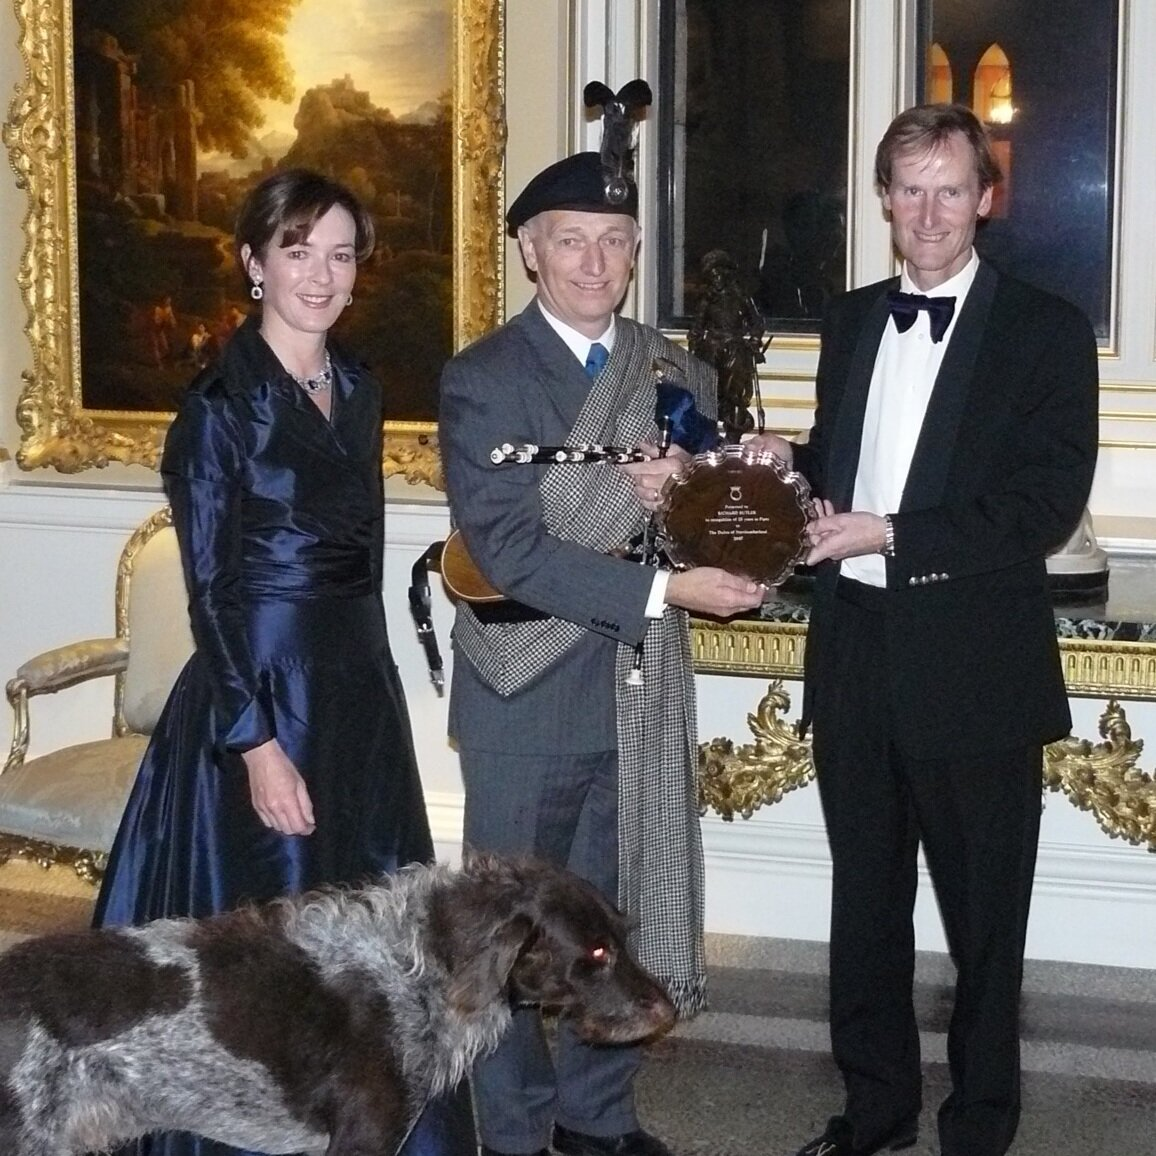 - Duke and Duchess of Northumberland presenting Richard Butler in 2007 with a silver plate marking 25 years of Richard's appointment as Piper to the Duke of Northumberland